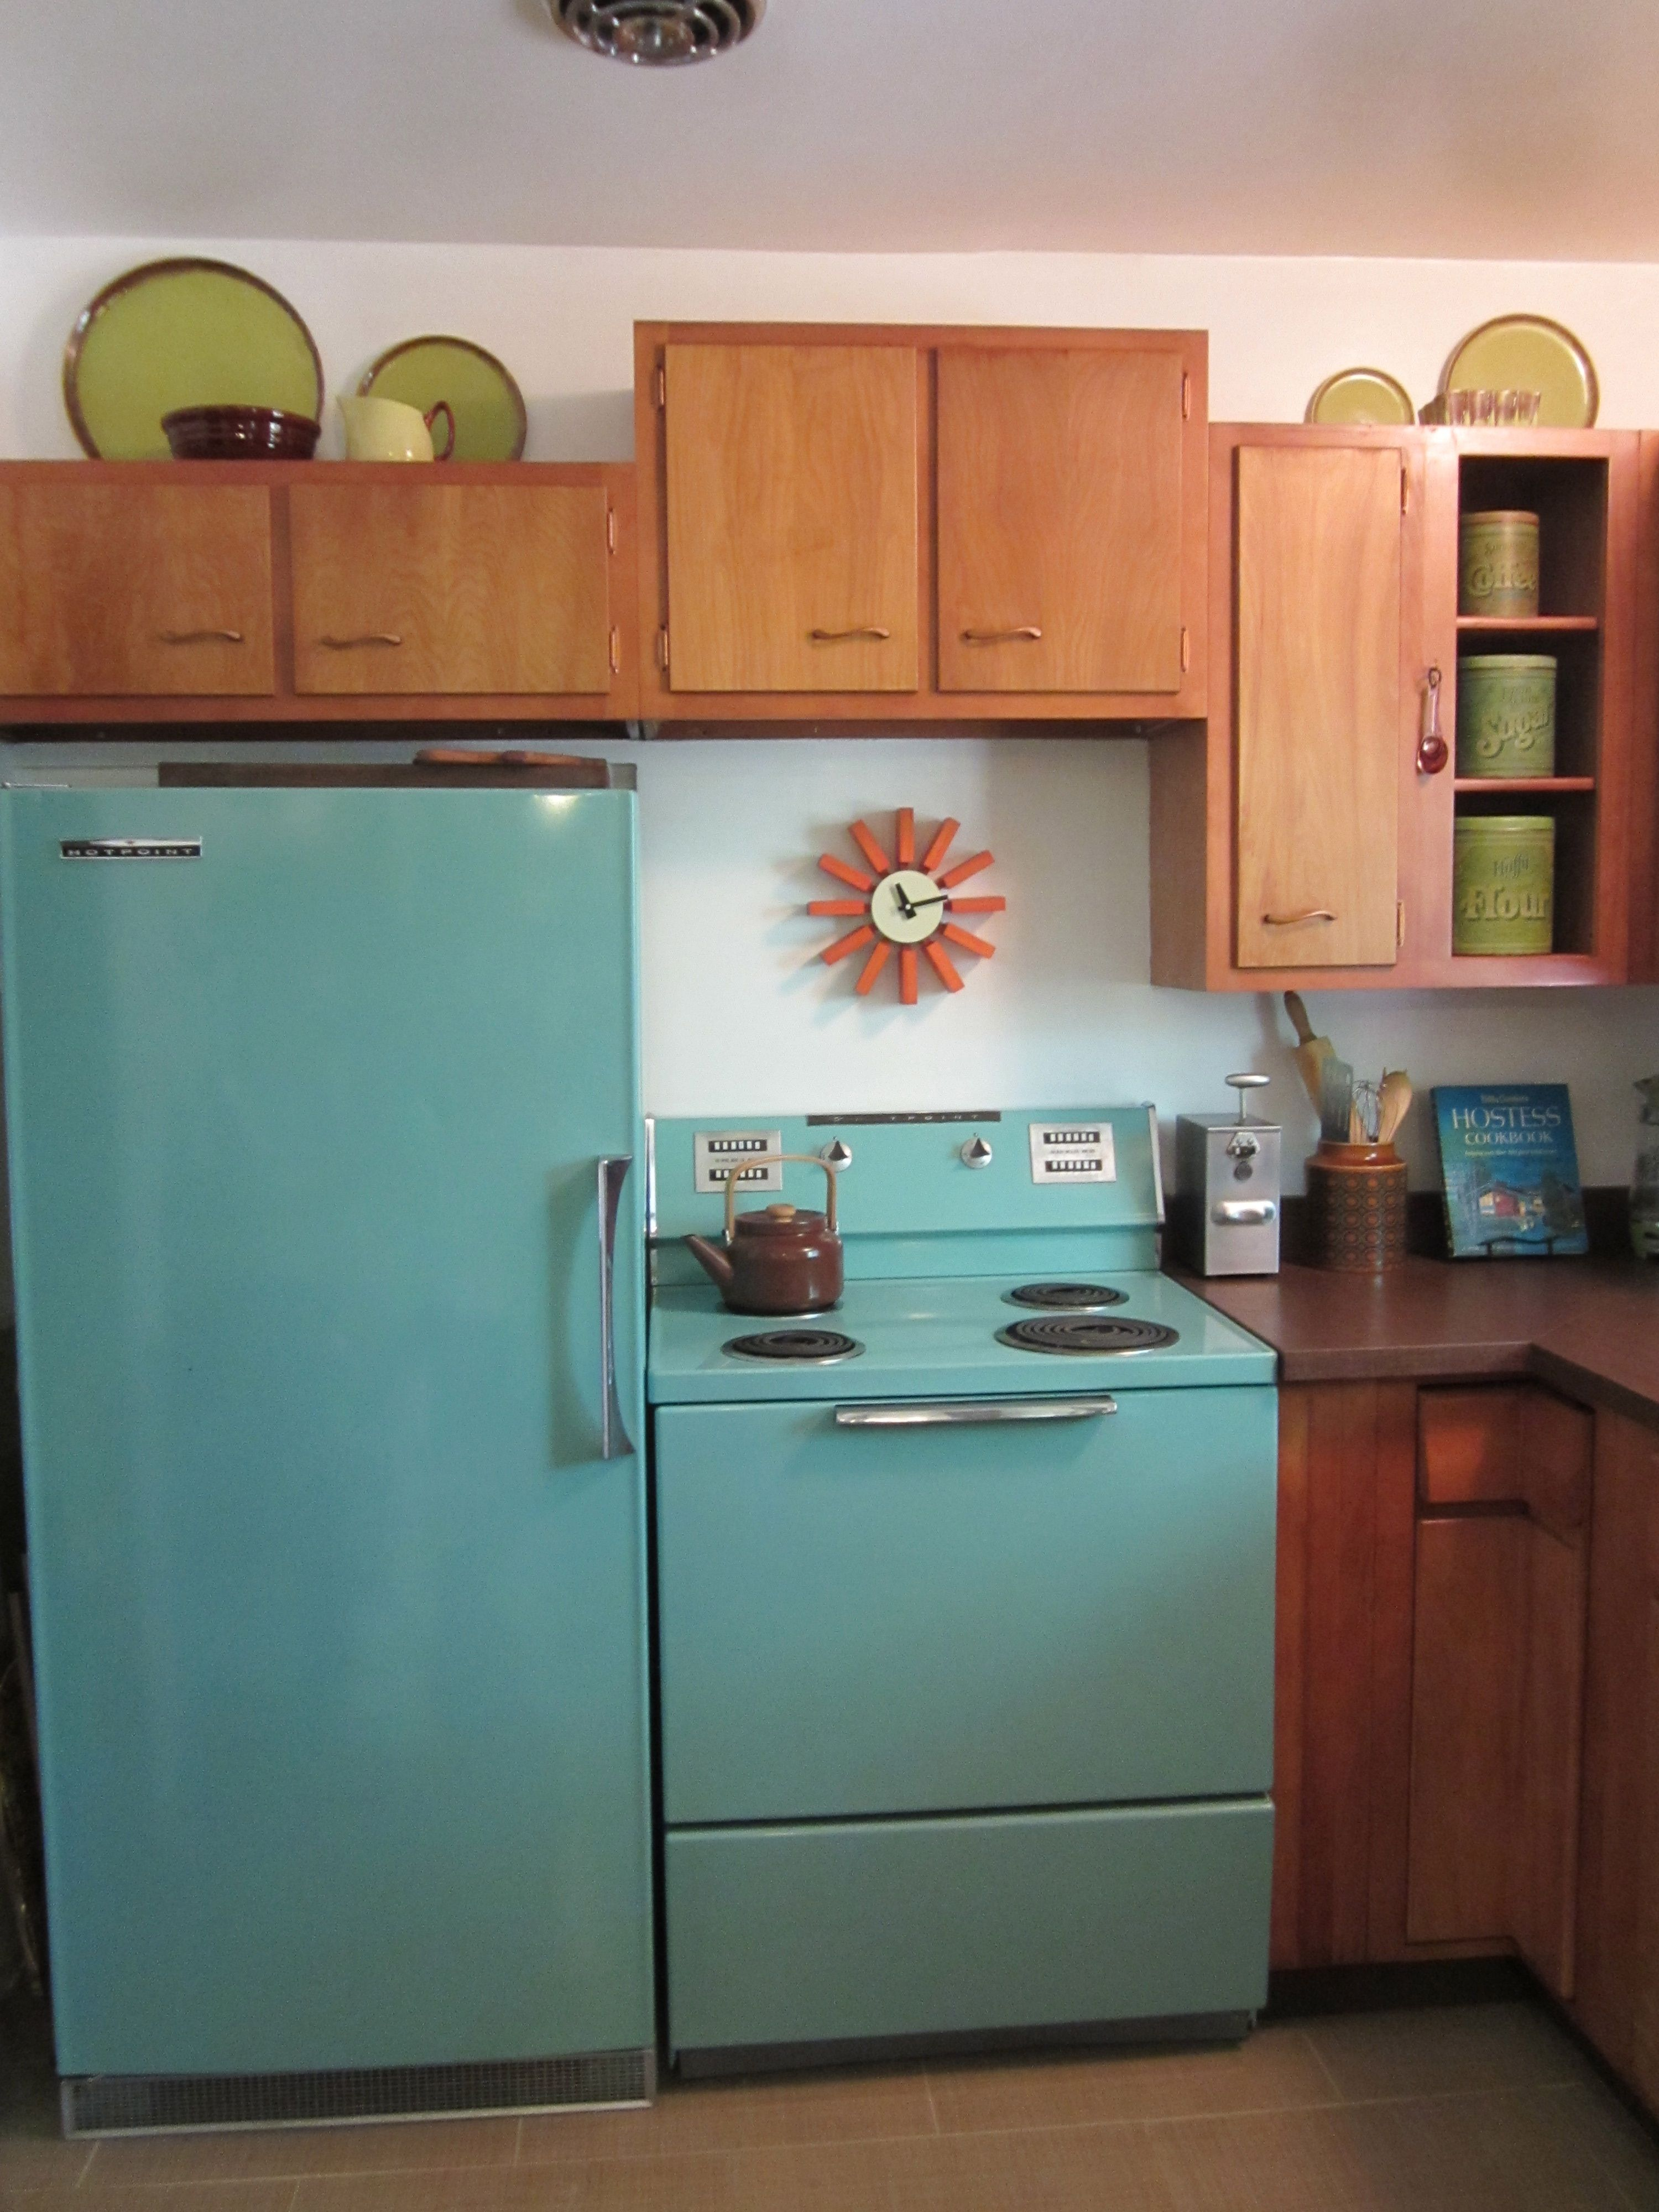 208 pictures of vintage stoves refrigerators and large appliances simple kitchen remodel on kitchen appliances id=50699